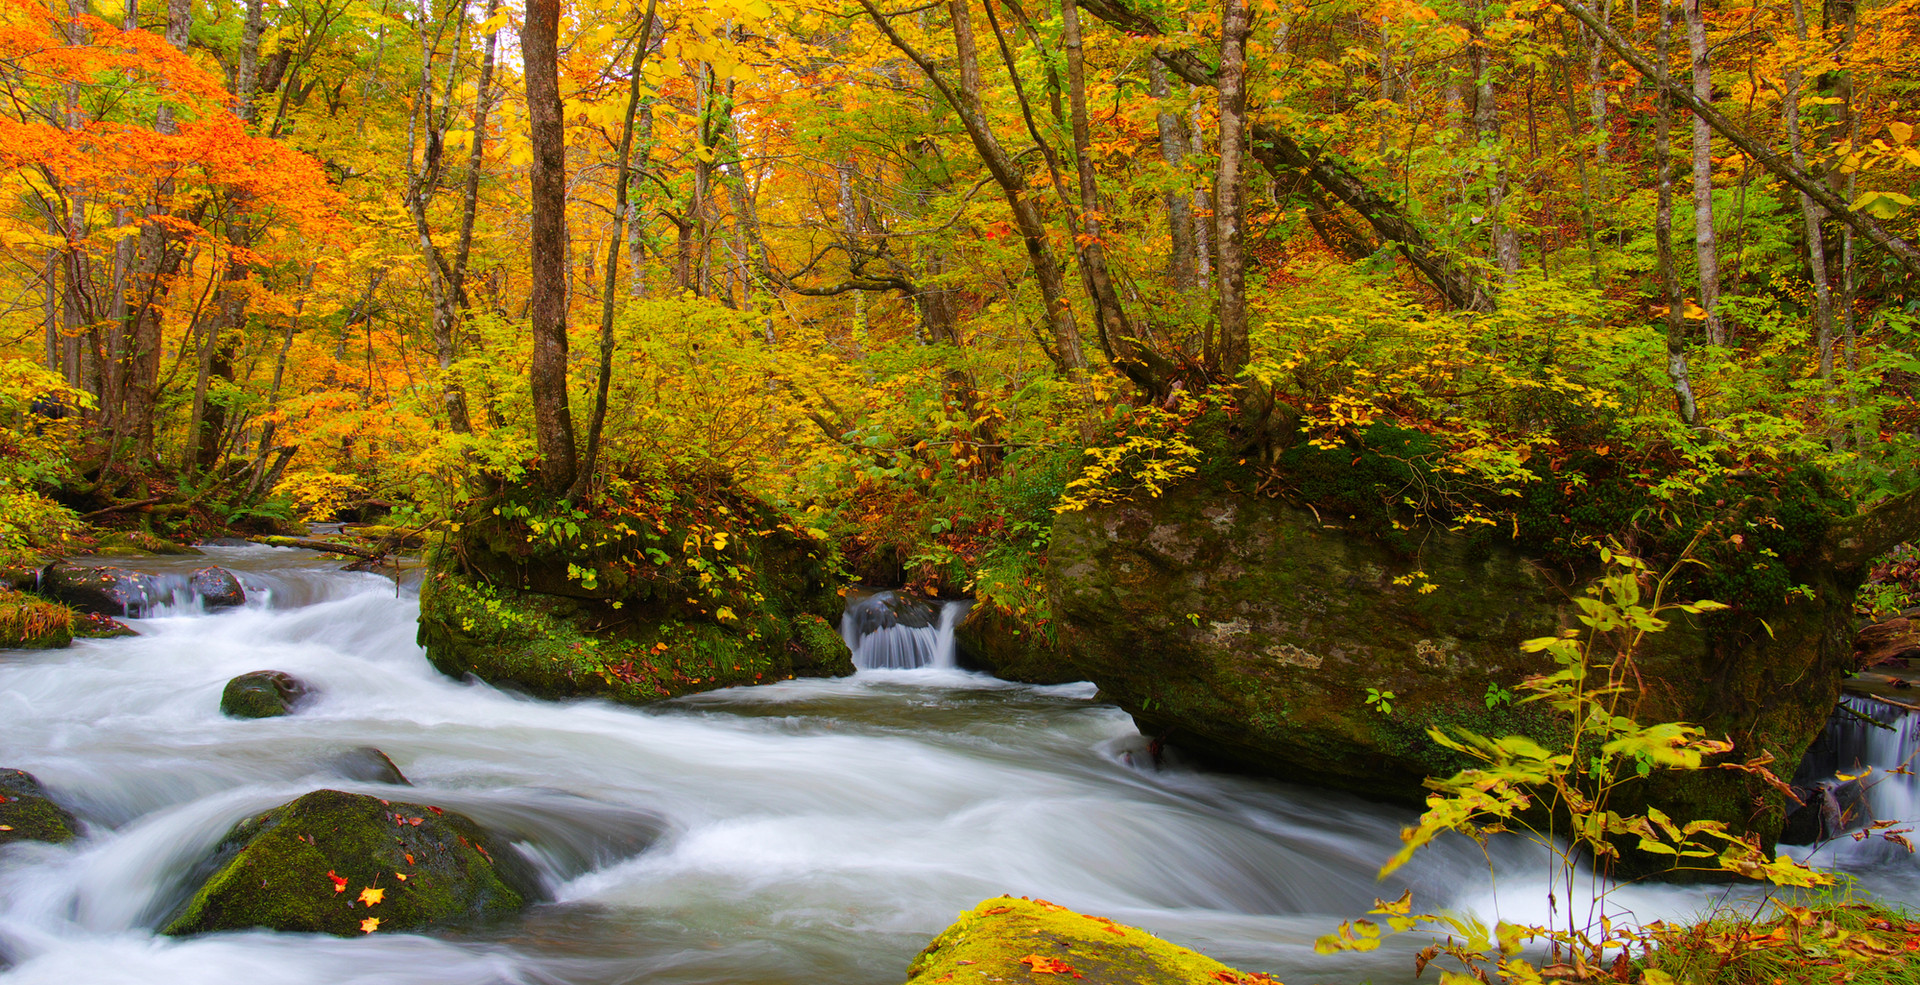 Autumn Colors of Oirase River, located a